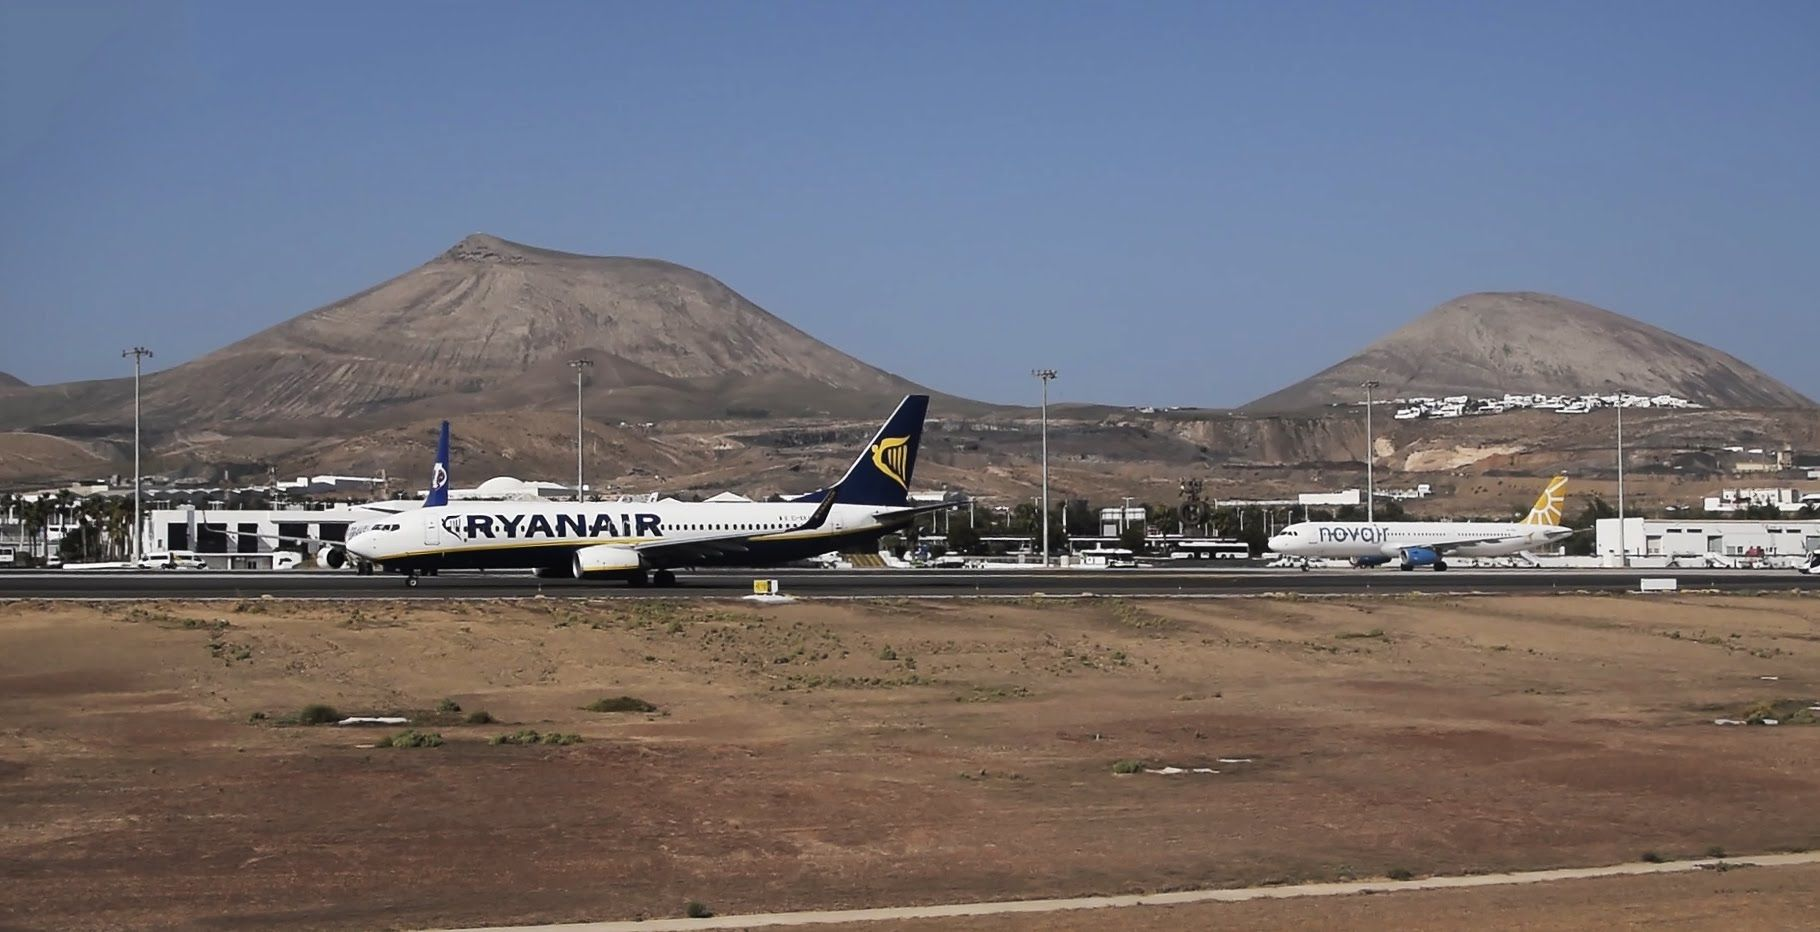 Airplane landing at Lanzarote Airport (ACE) after a flight